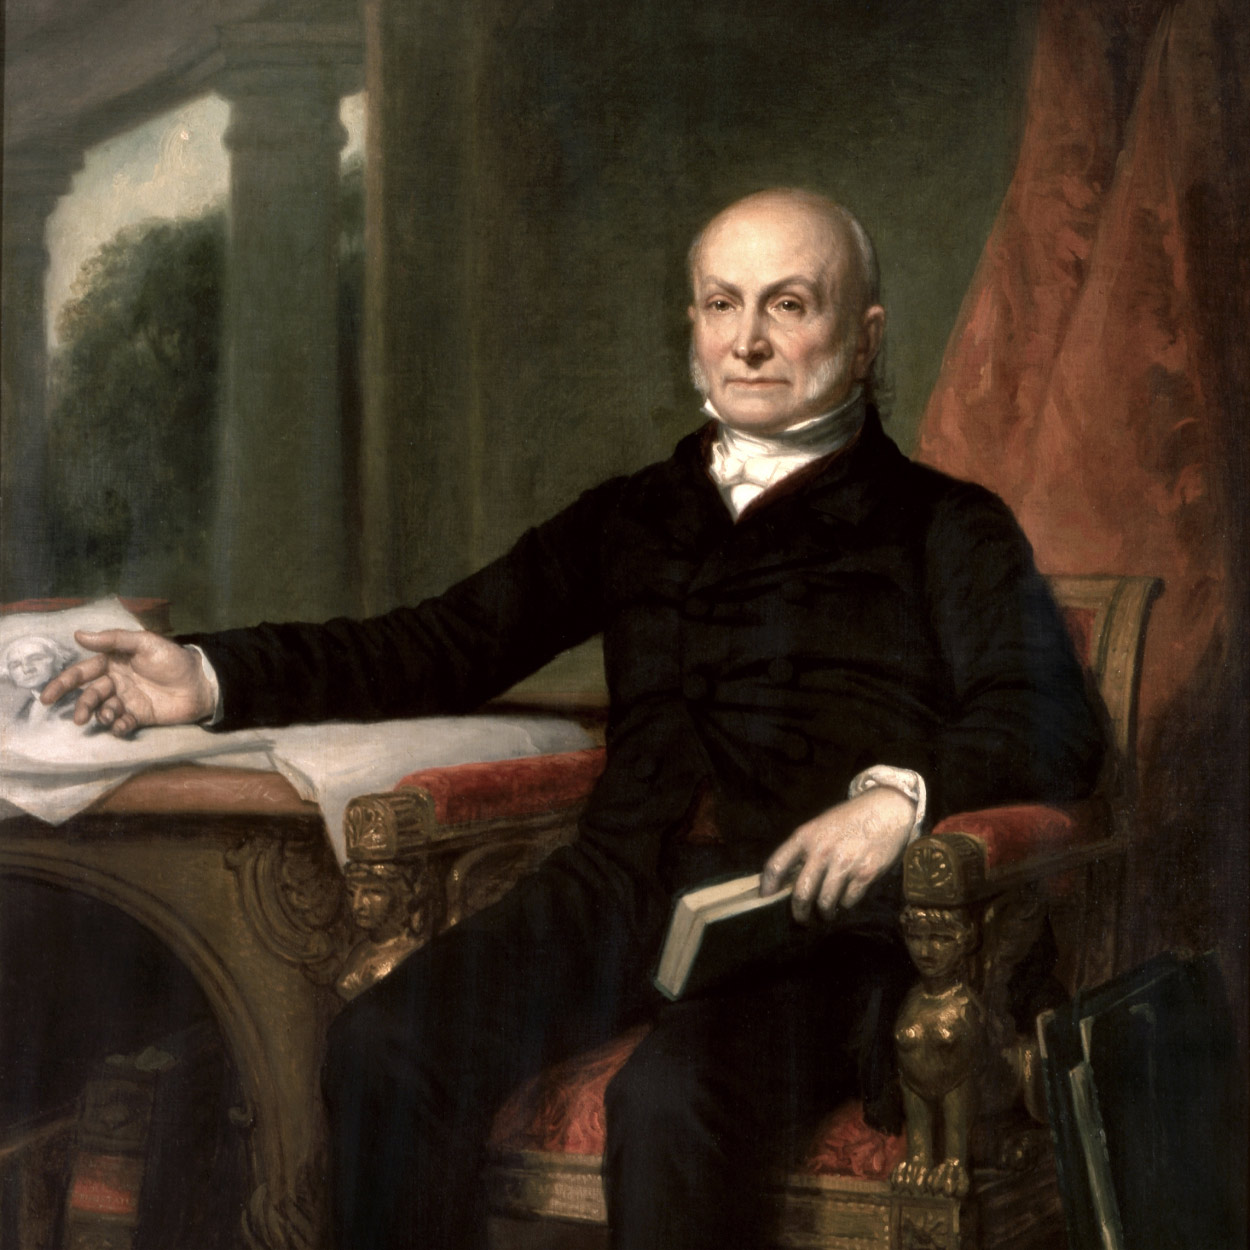 Portrait of John Quincy Adams, the 6th President of the United States